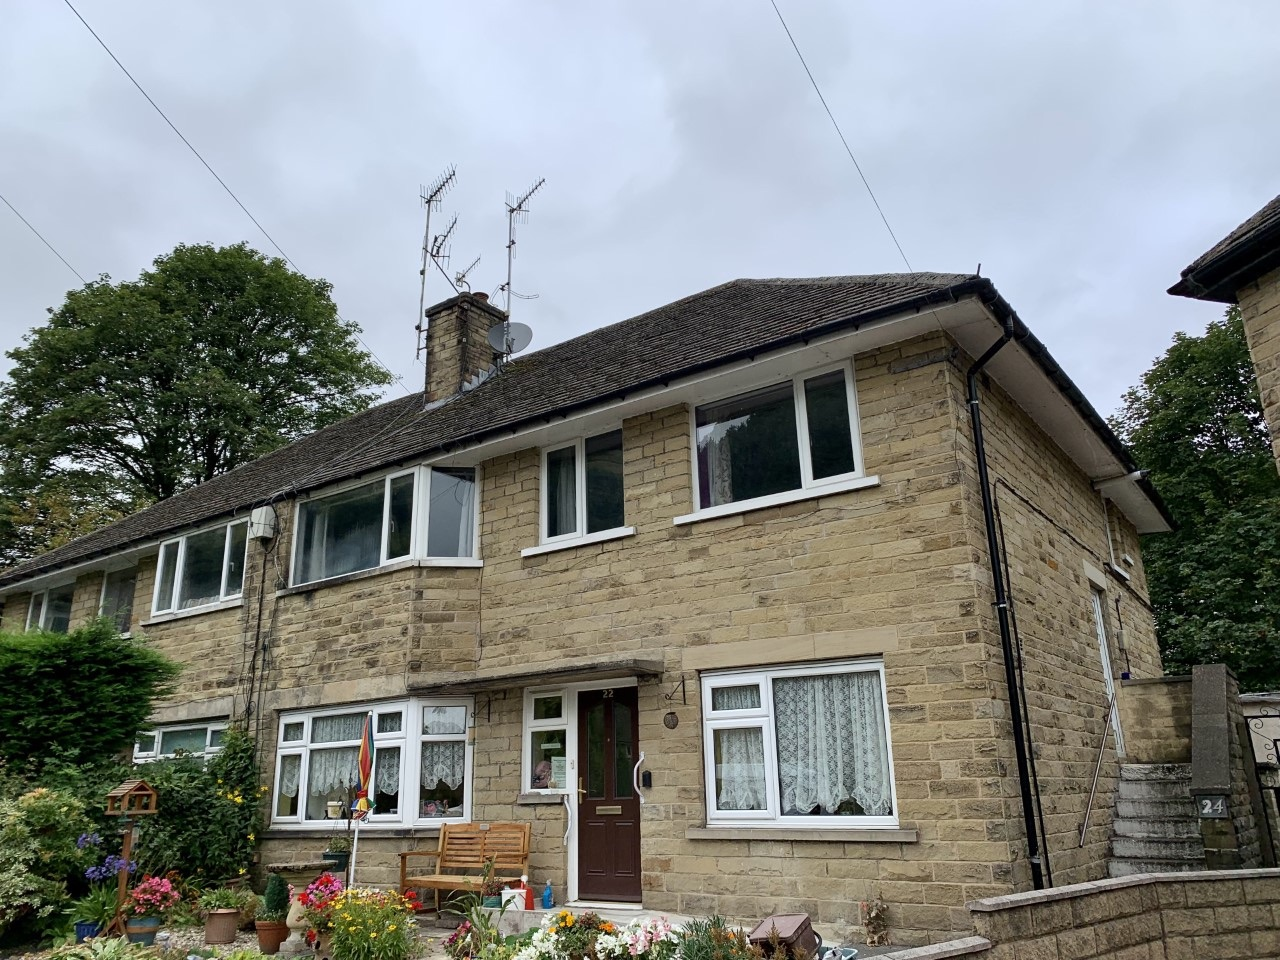 2 bedroom maisonette flat/apartment For Sale in Todmorden - Property photograph.